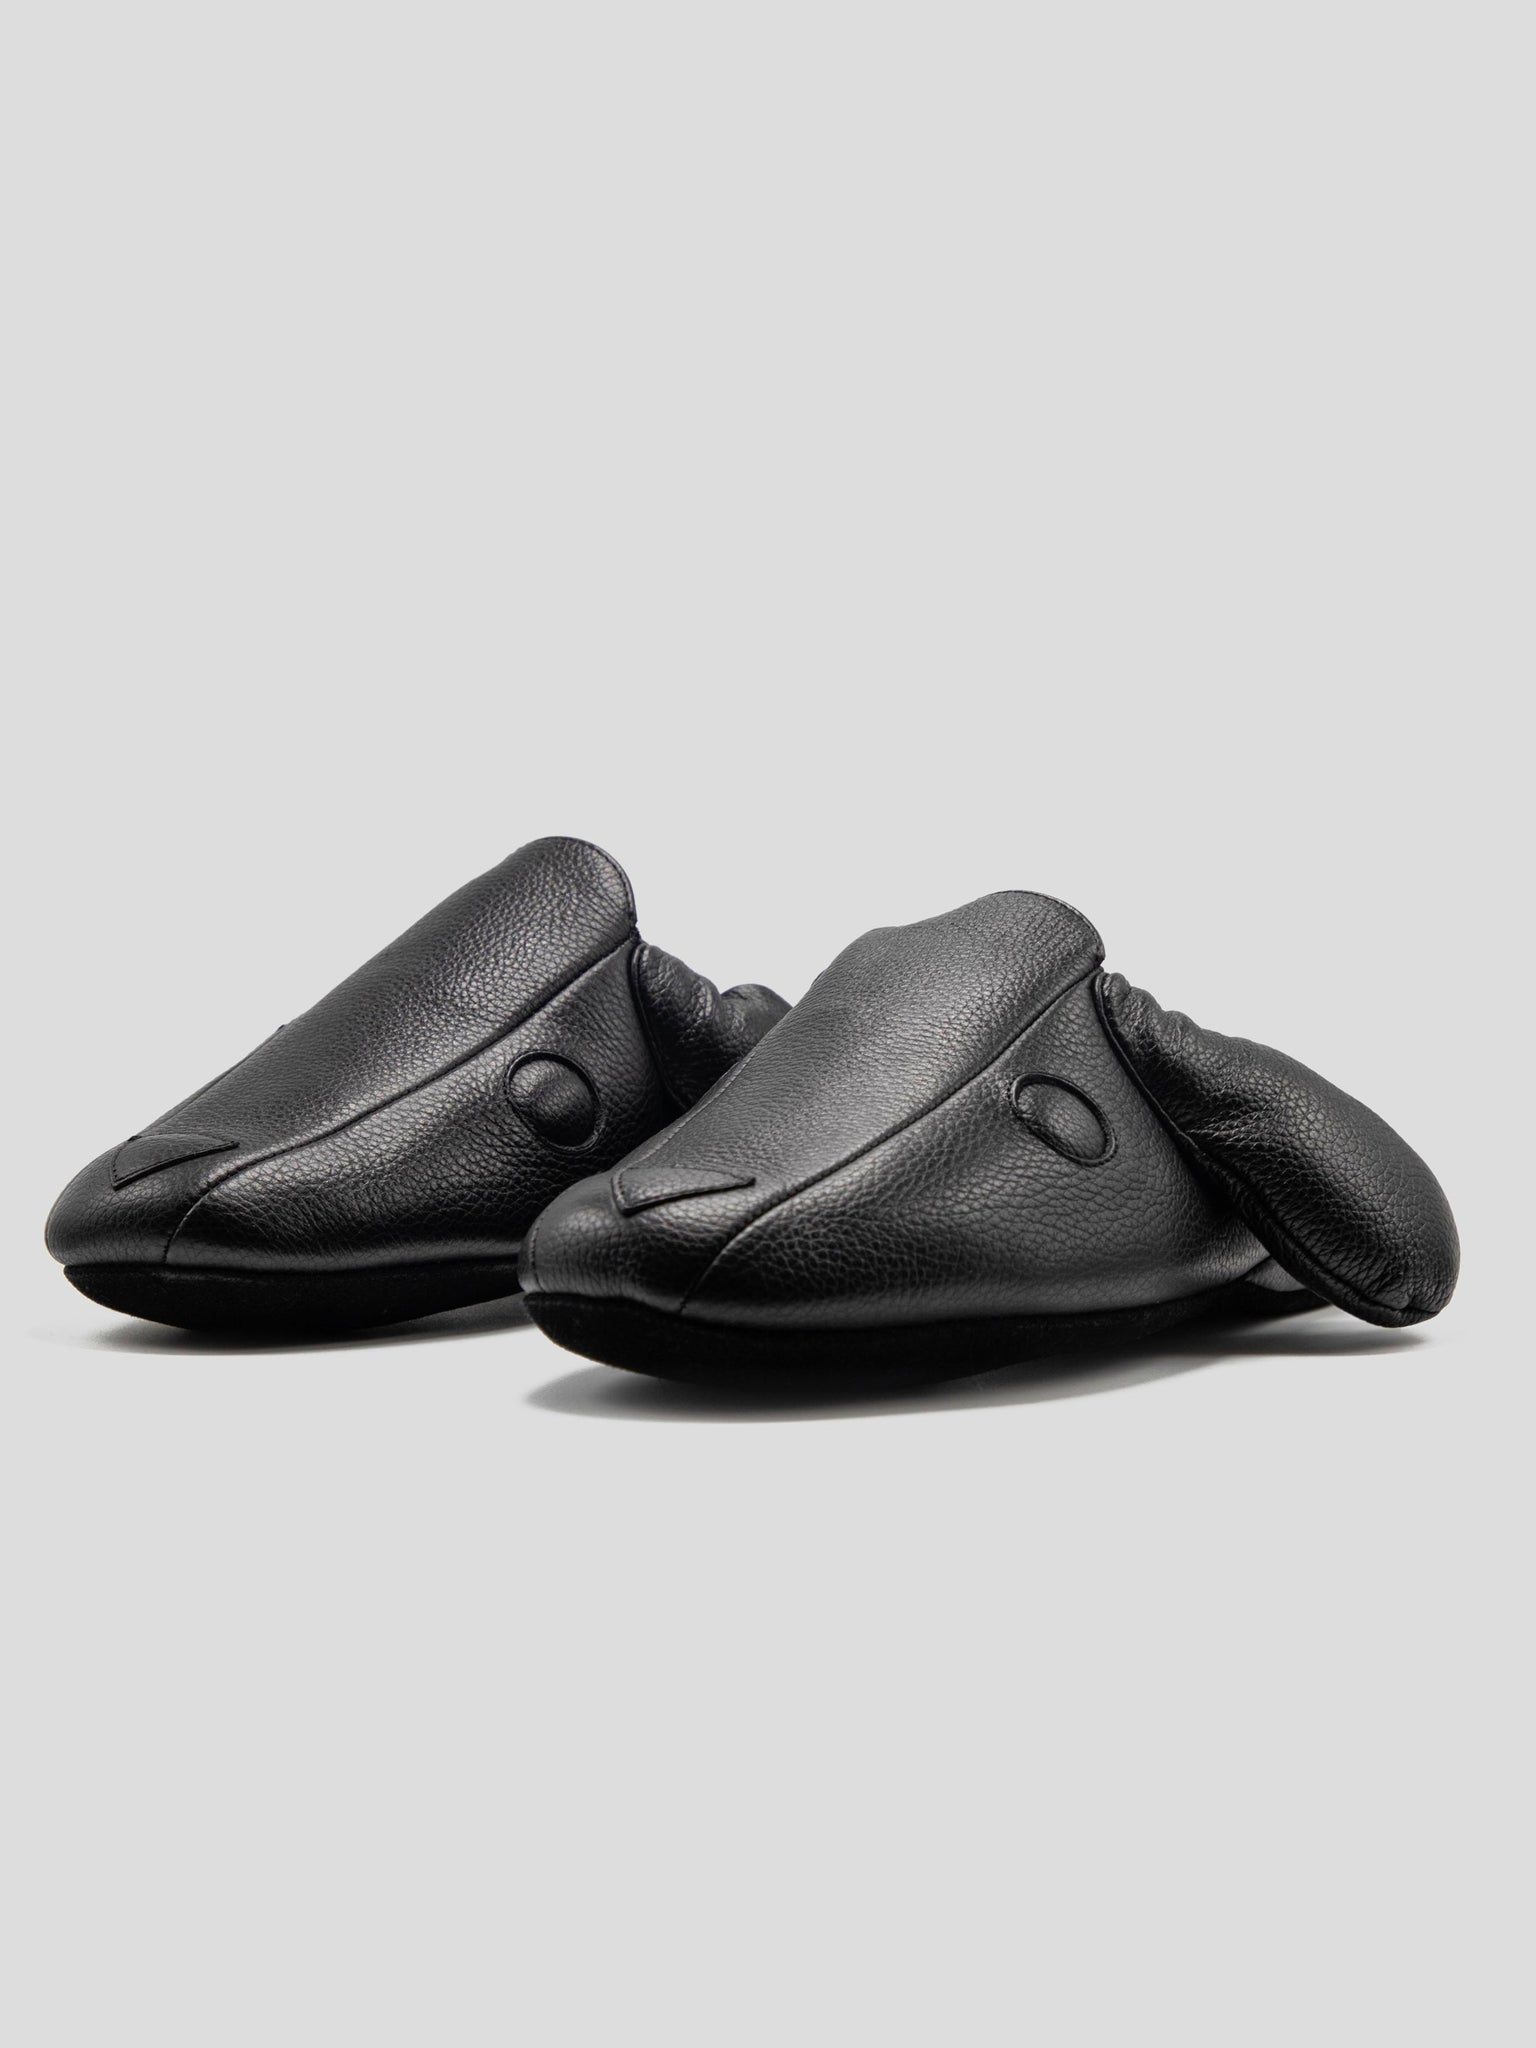 hector-slipper-w-goat-skin-lining-leather-sole-in-pebble-grain